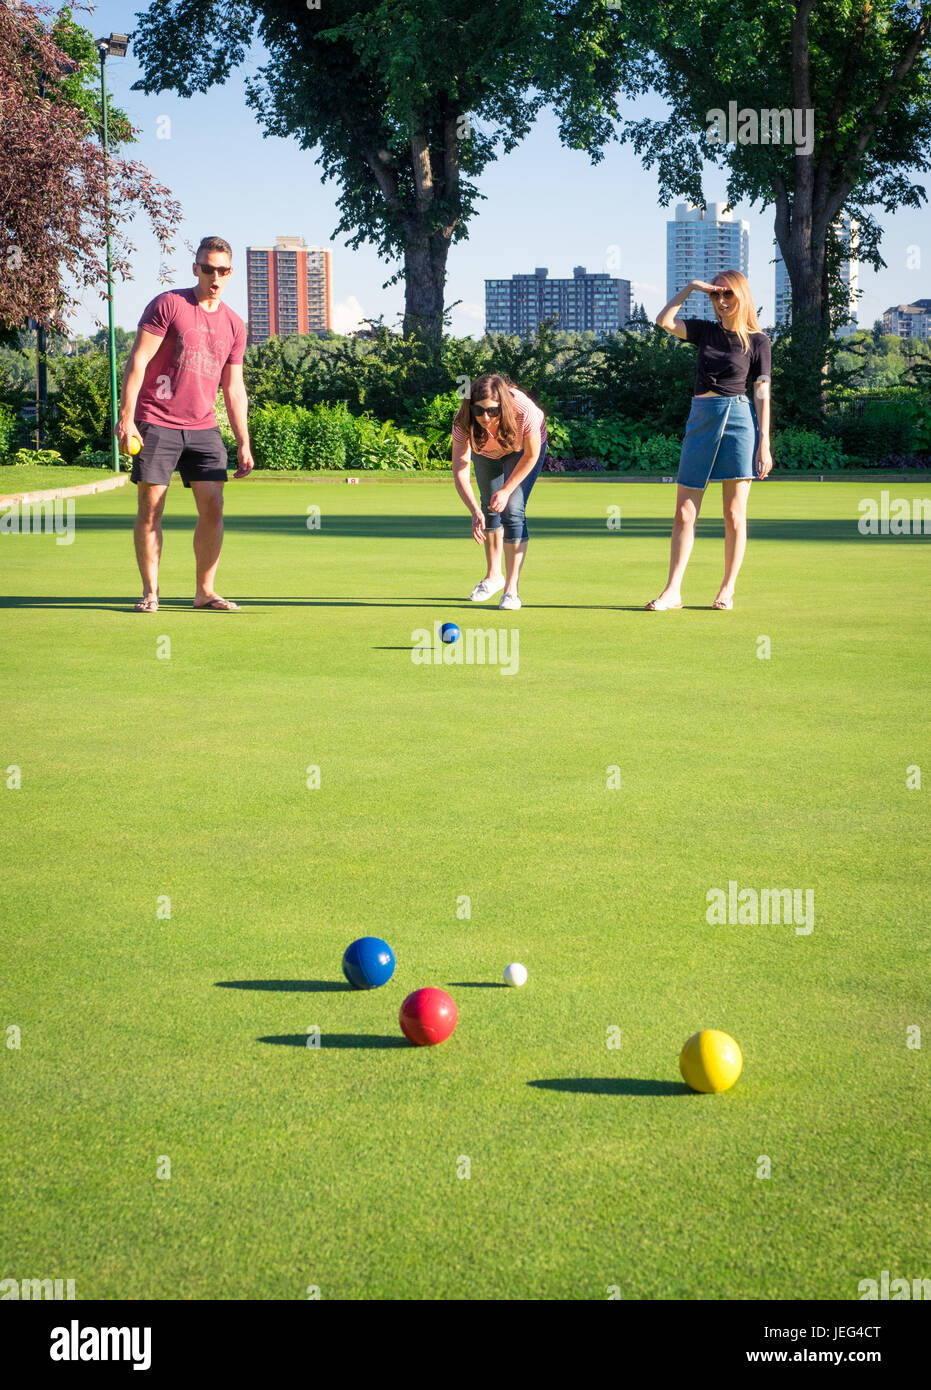 Friends play bocce ball on a manicured bowling green at the Royal Lawn Bowling Club in Edmonton, Alberta, Canada. - Stock Image